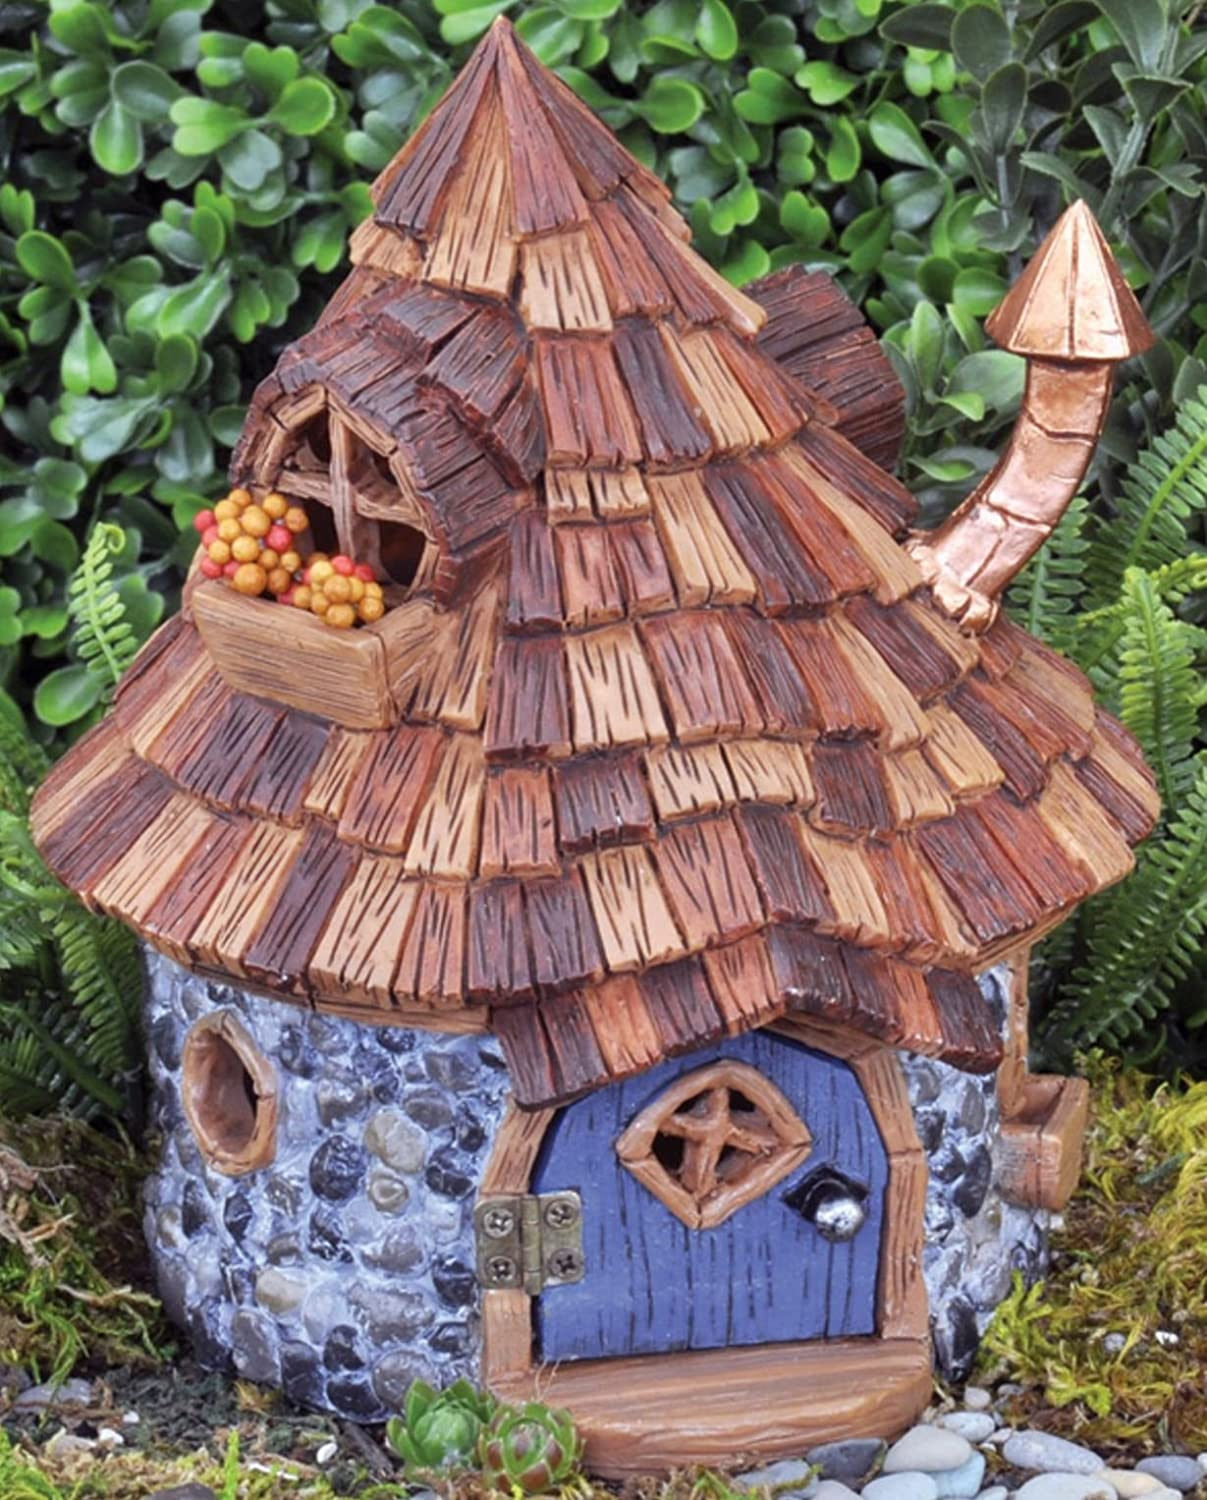 amazoncom shingletown cone top fairy house with door that opens and closes fiddlehead fairy garden garden outdoor - Fairy Garden Houses